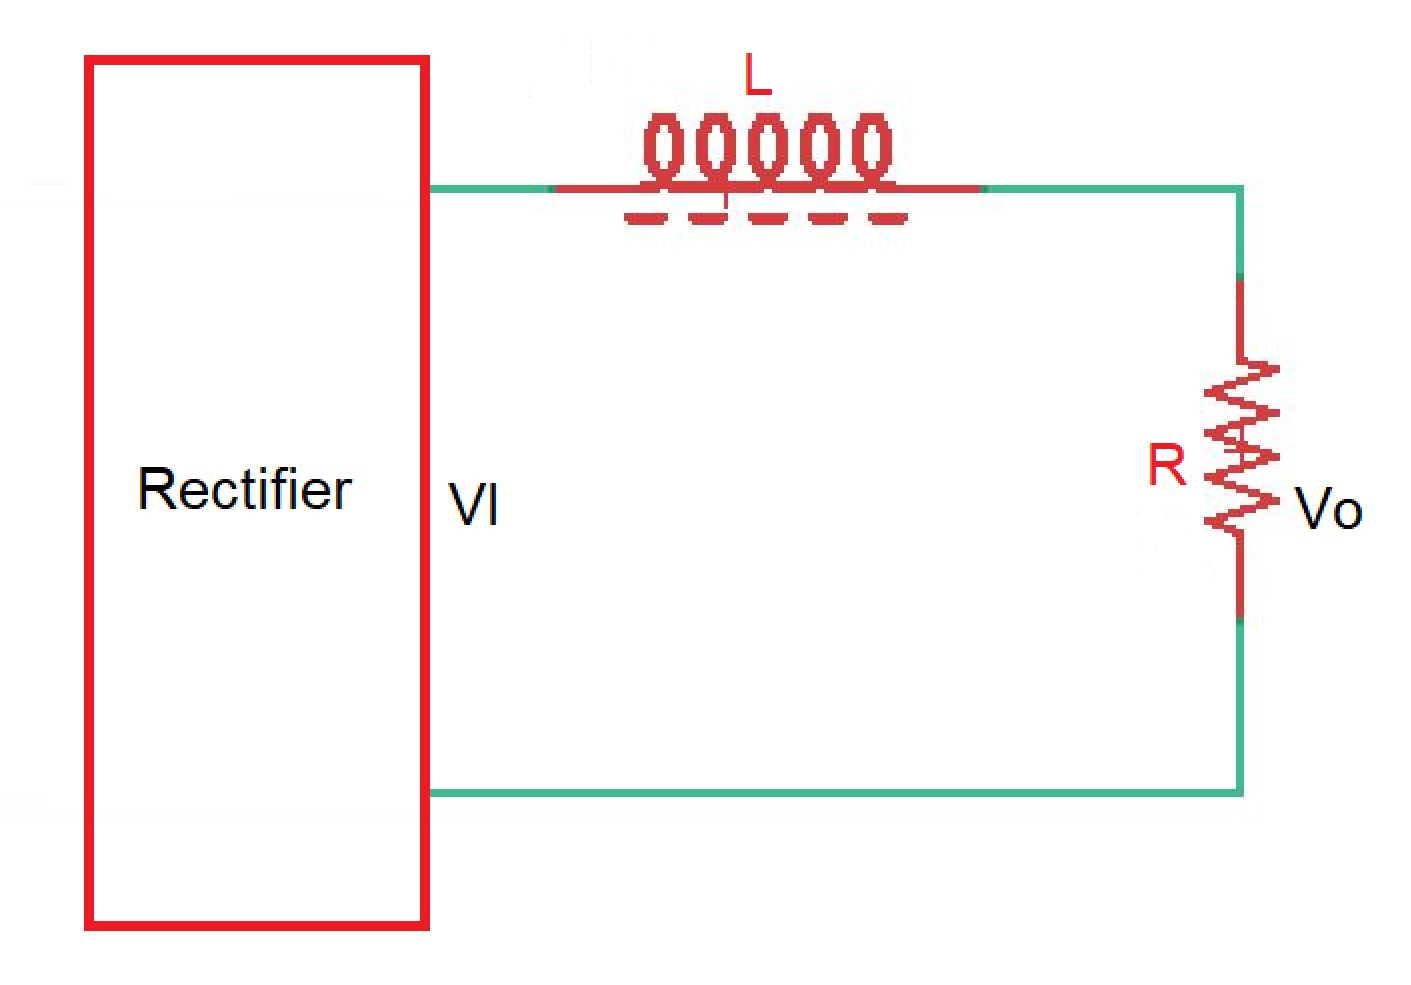 Why filter is used in rectifier